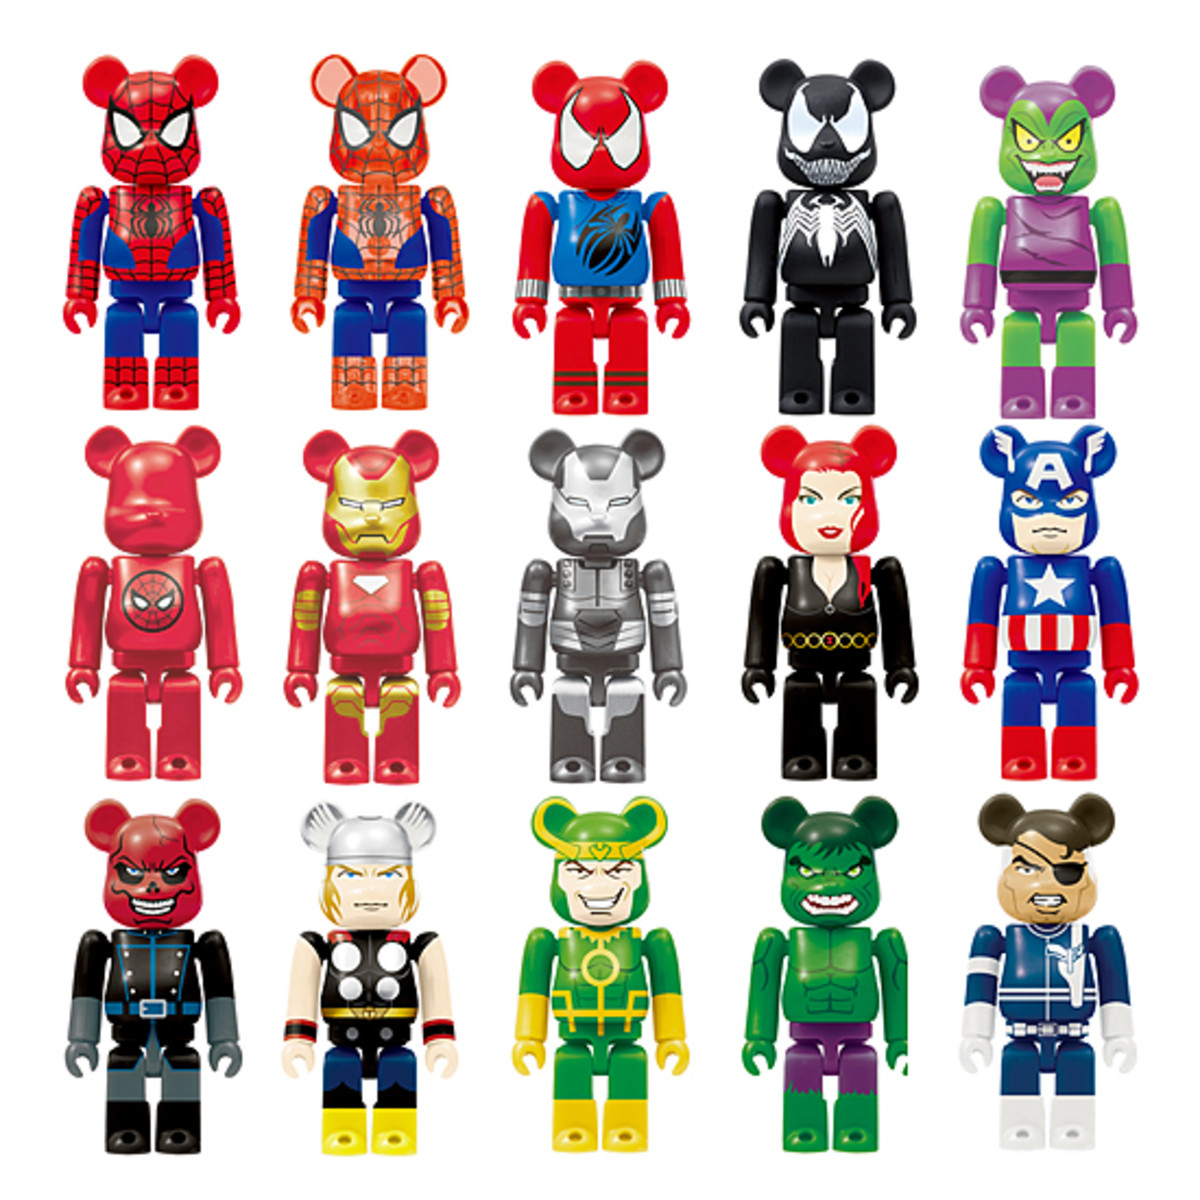 medicom-toy-bearbrick-happy-kuji-series-01